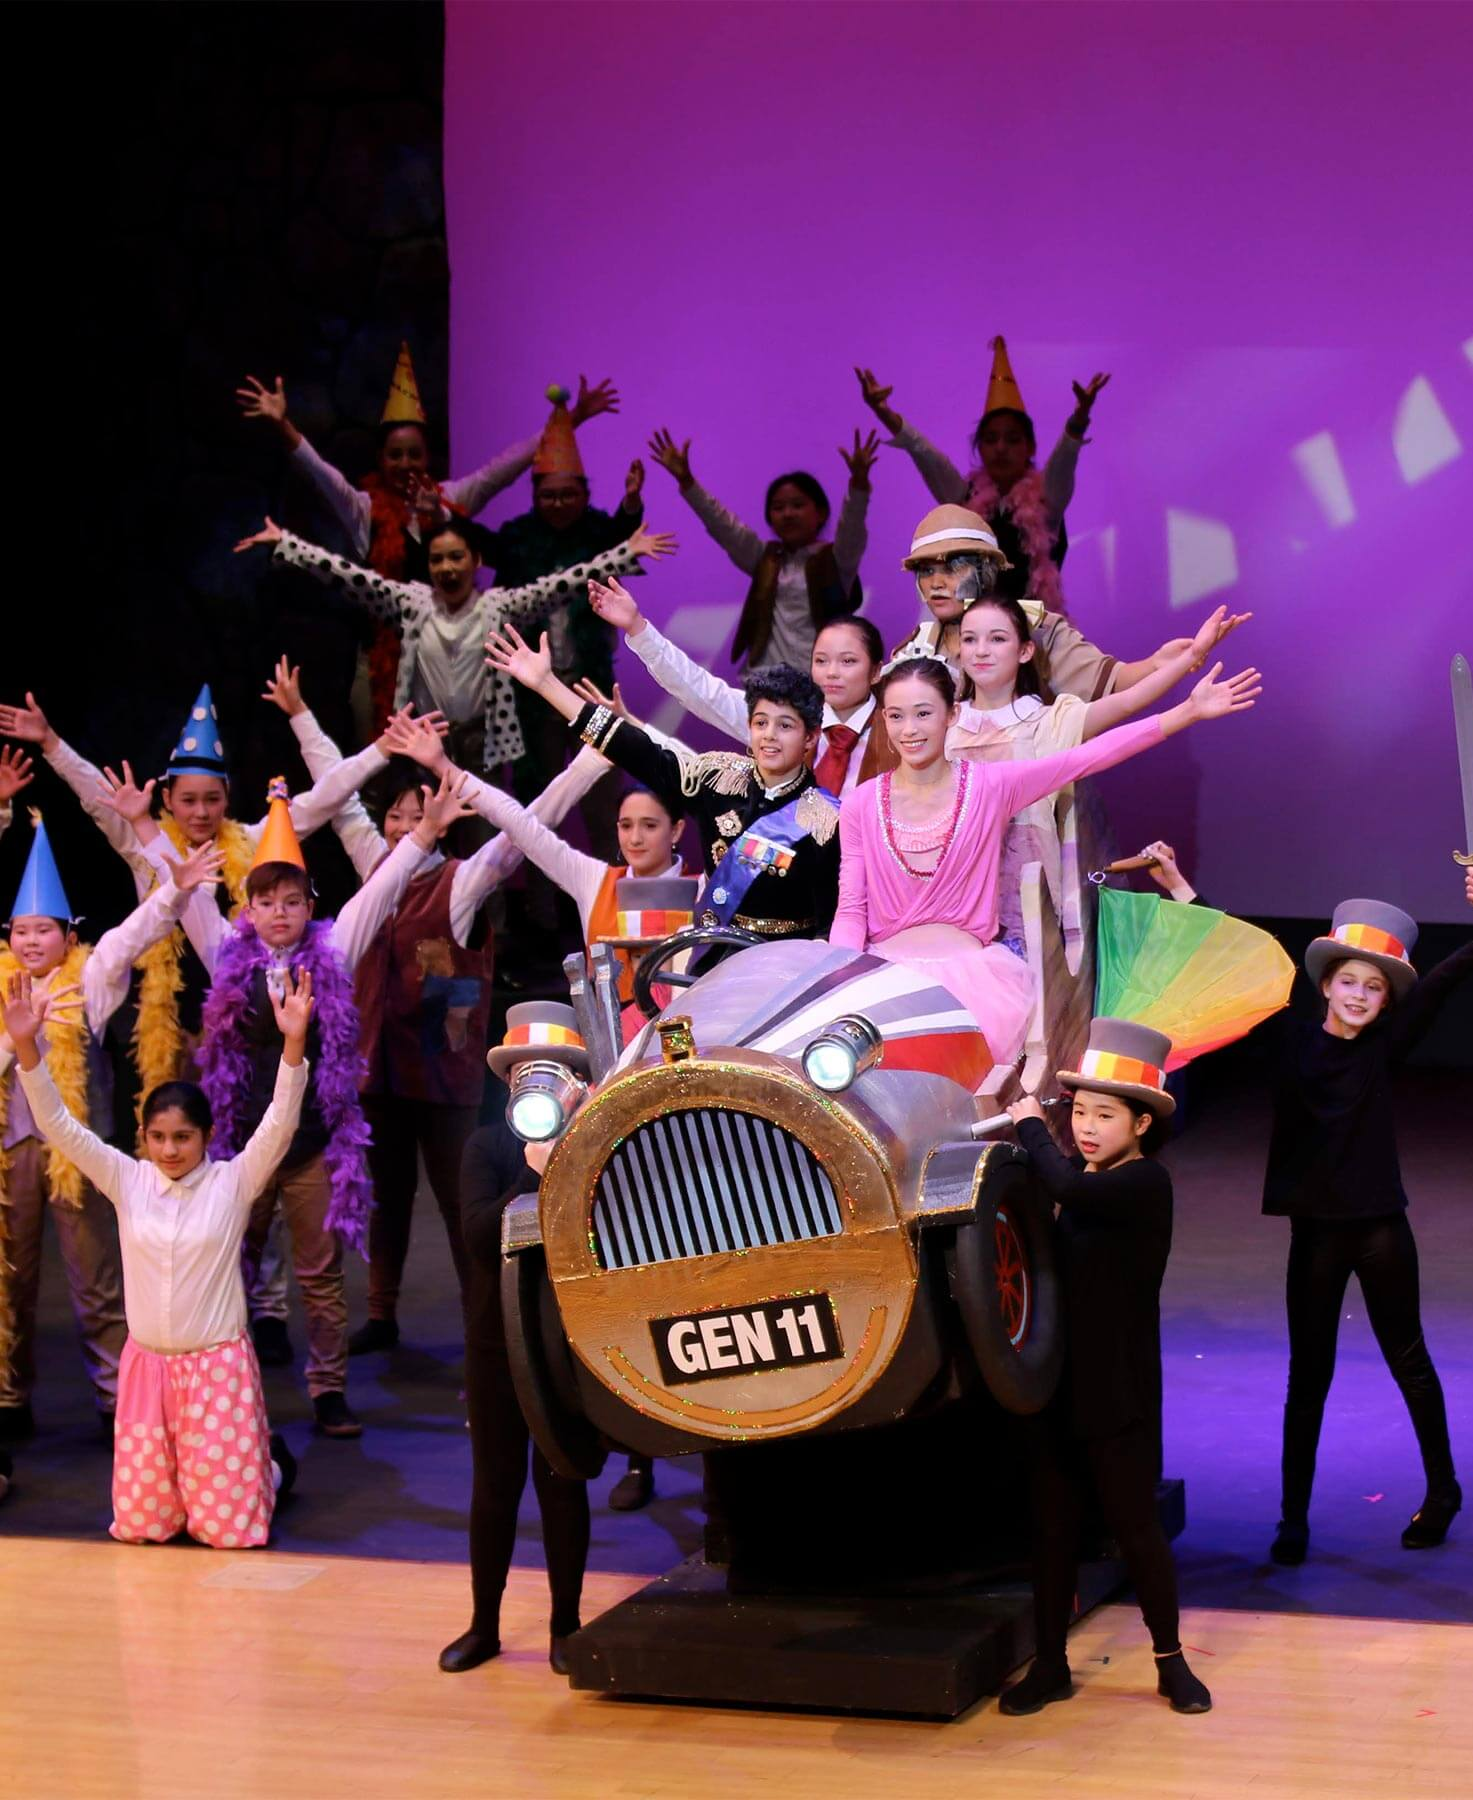 Middle School Musical, Chitty Chitty Bang Bang, in the ASIJ Theater